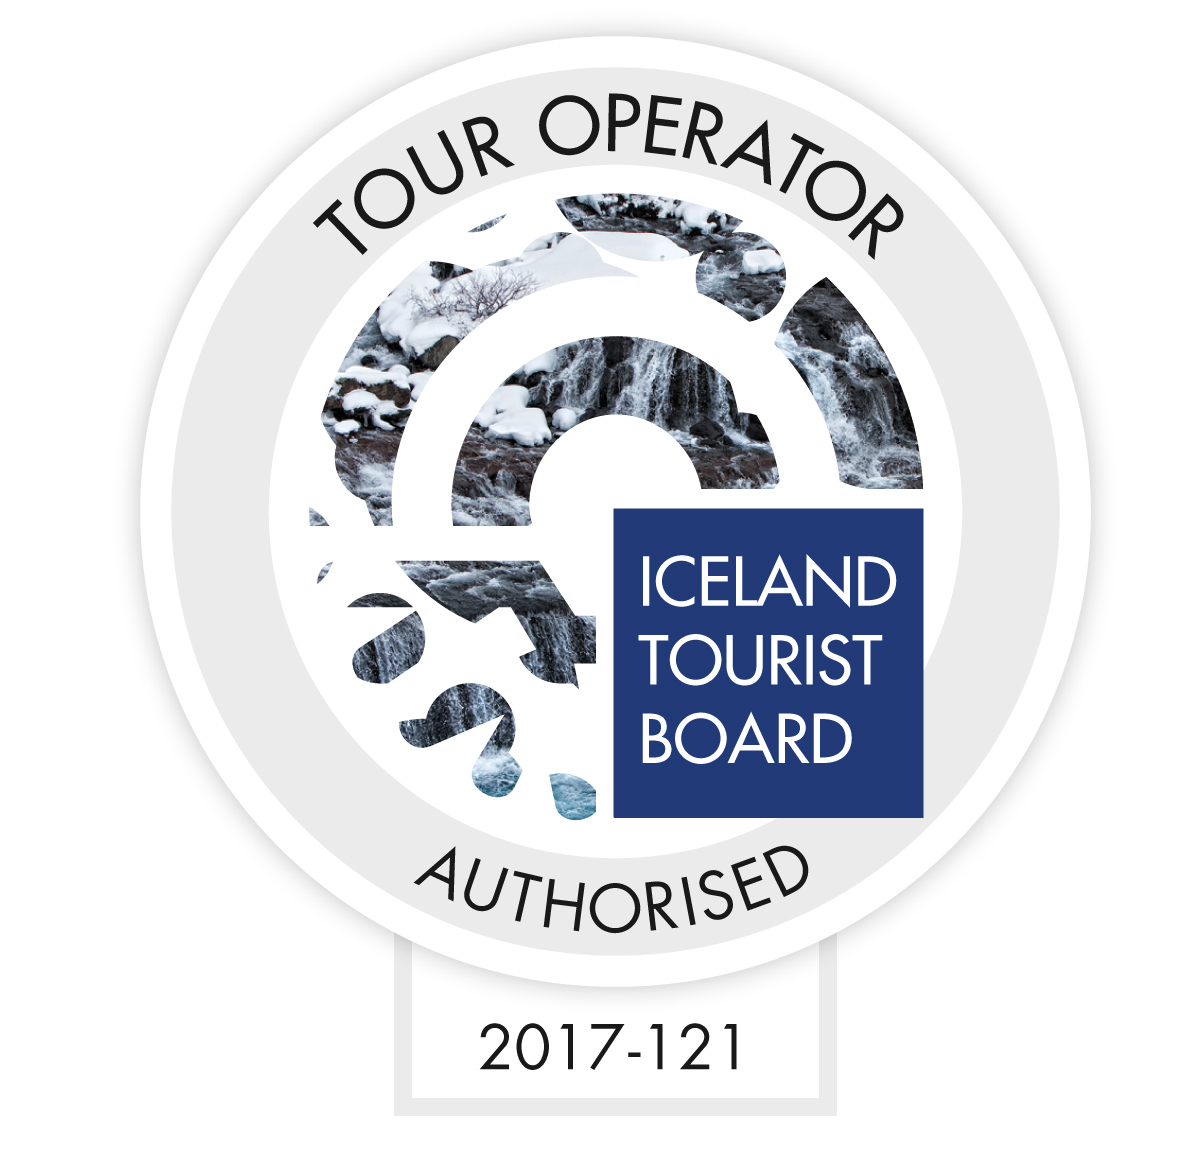 Authorized Tour Operator by the Icelandic Tourist Board